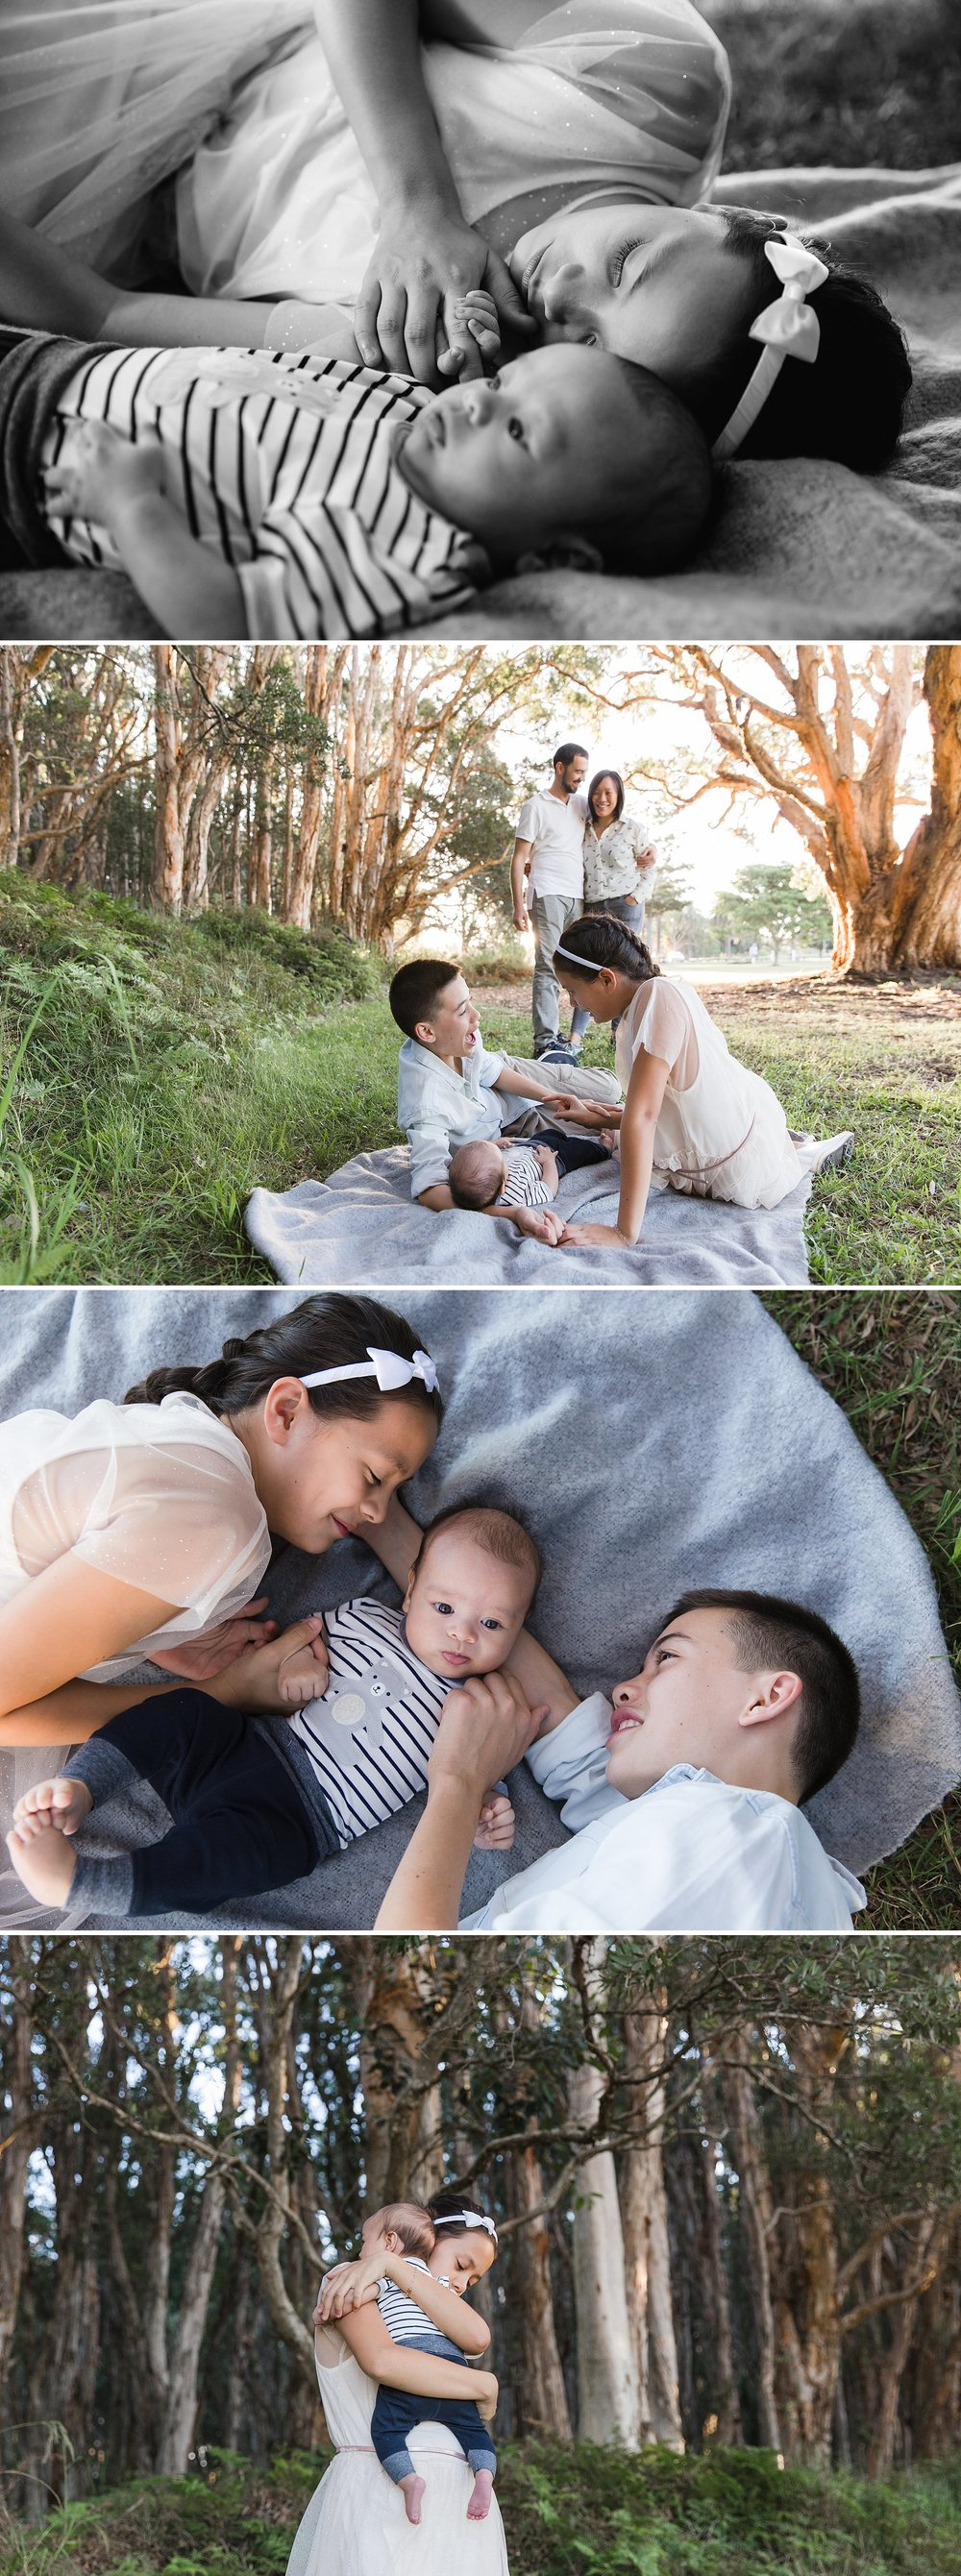 Sydney Lifestyle Family Photography_0001.jpg